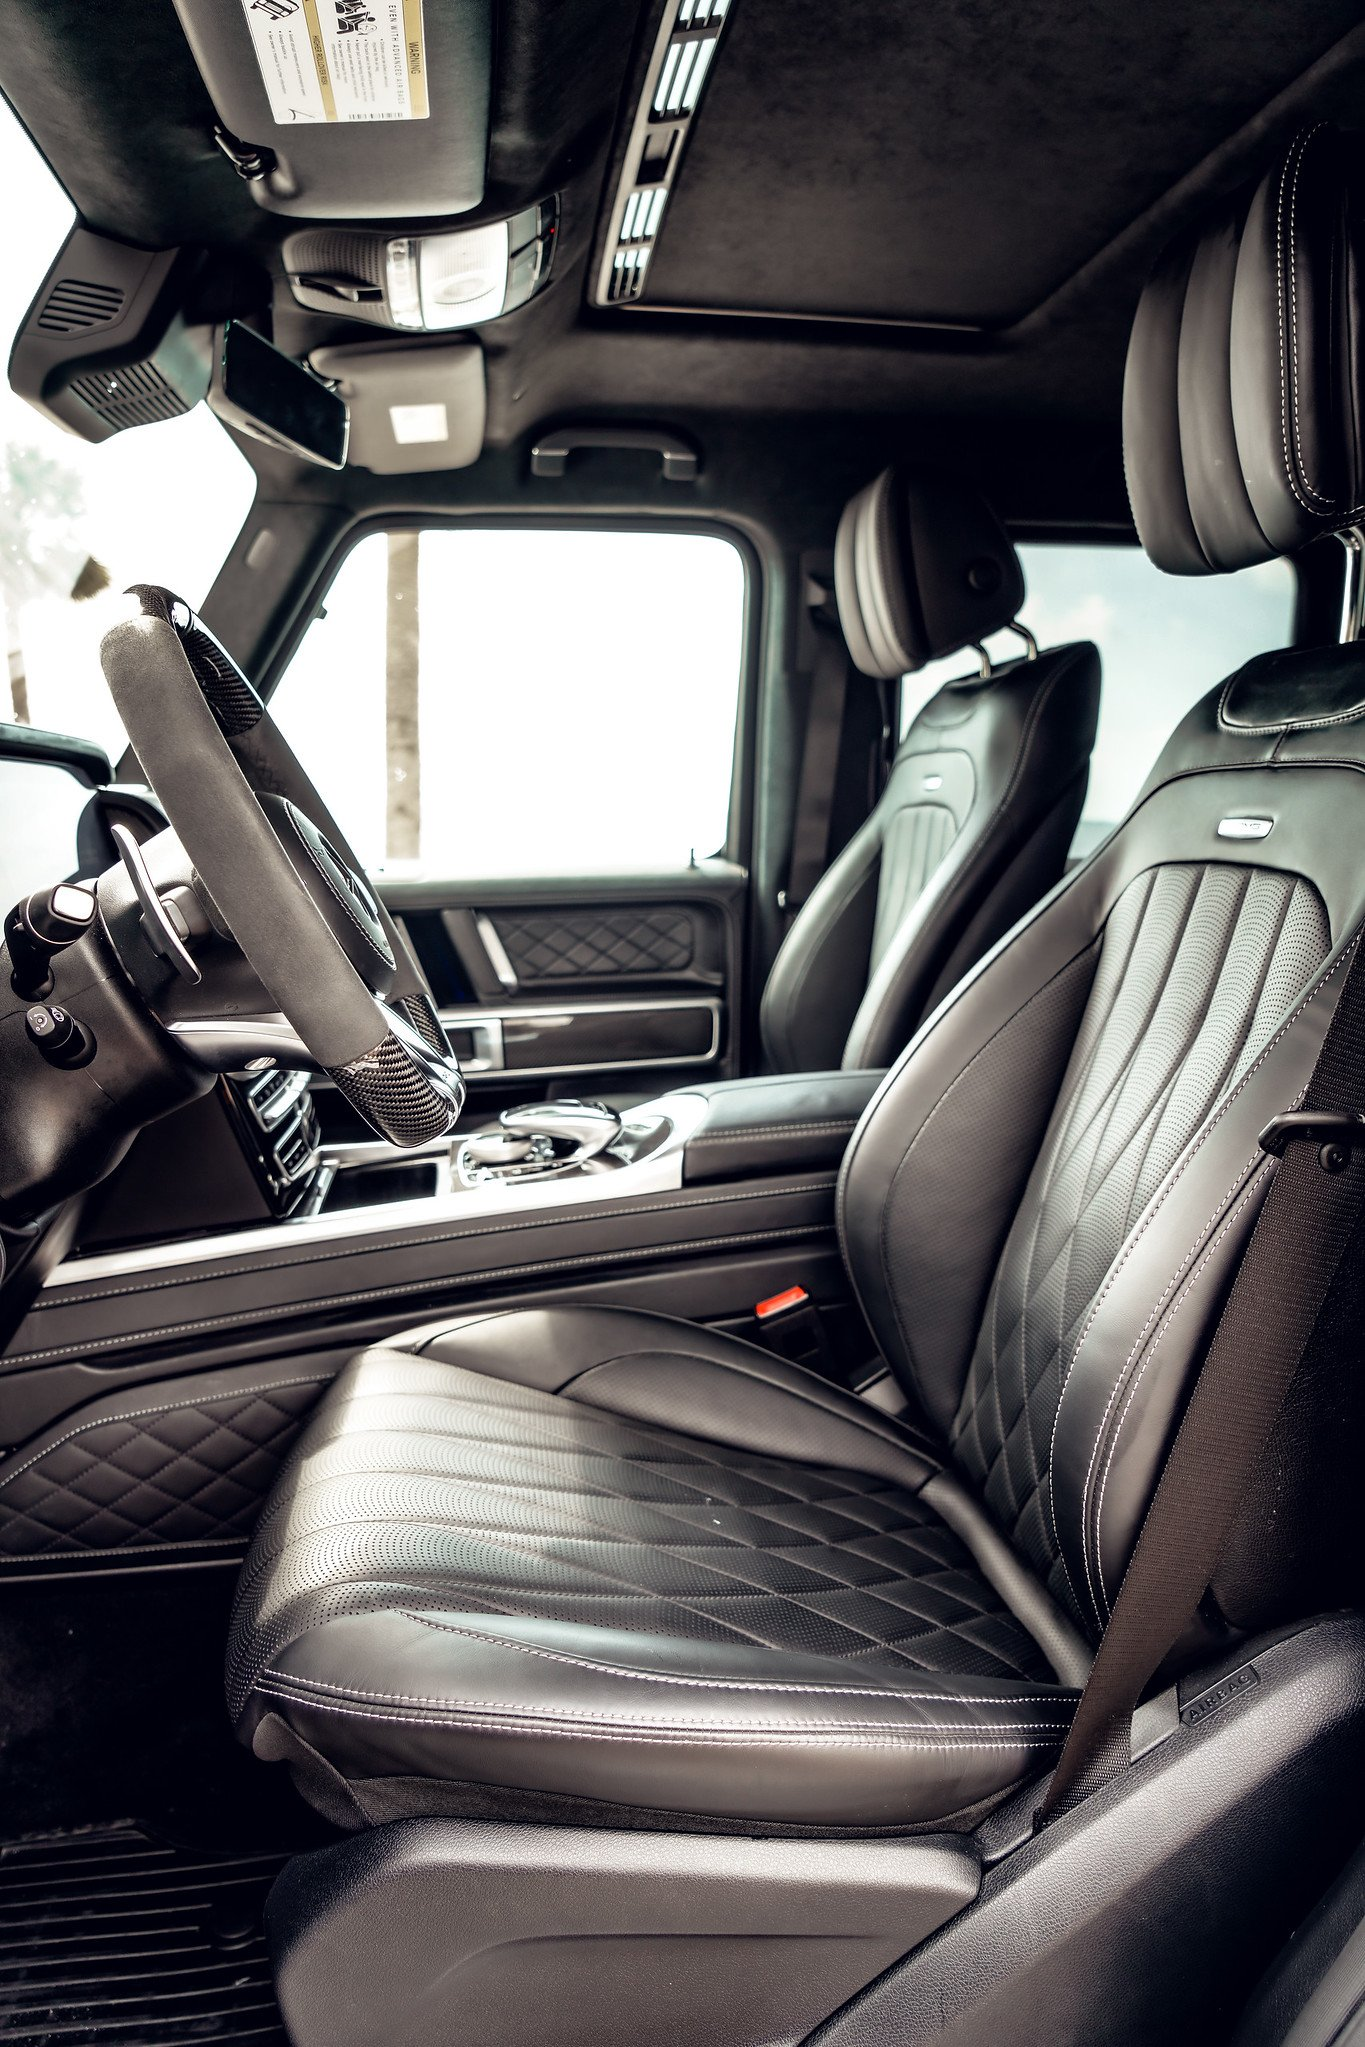 Image #8 of our  Mercedes AMG G63    In Miami Fort Lauderdale Palm Beach South Florida